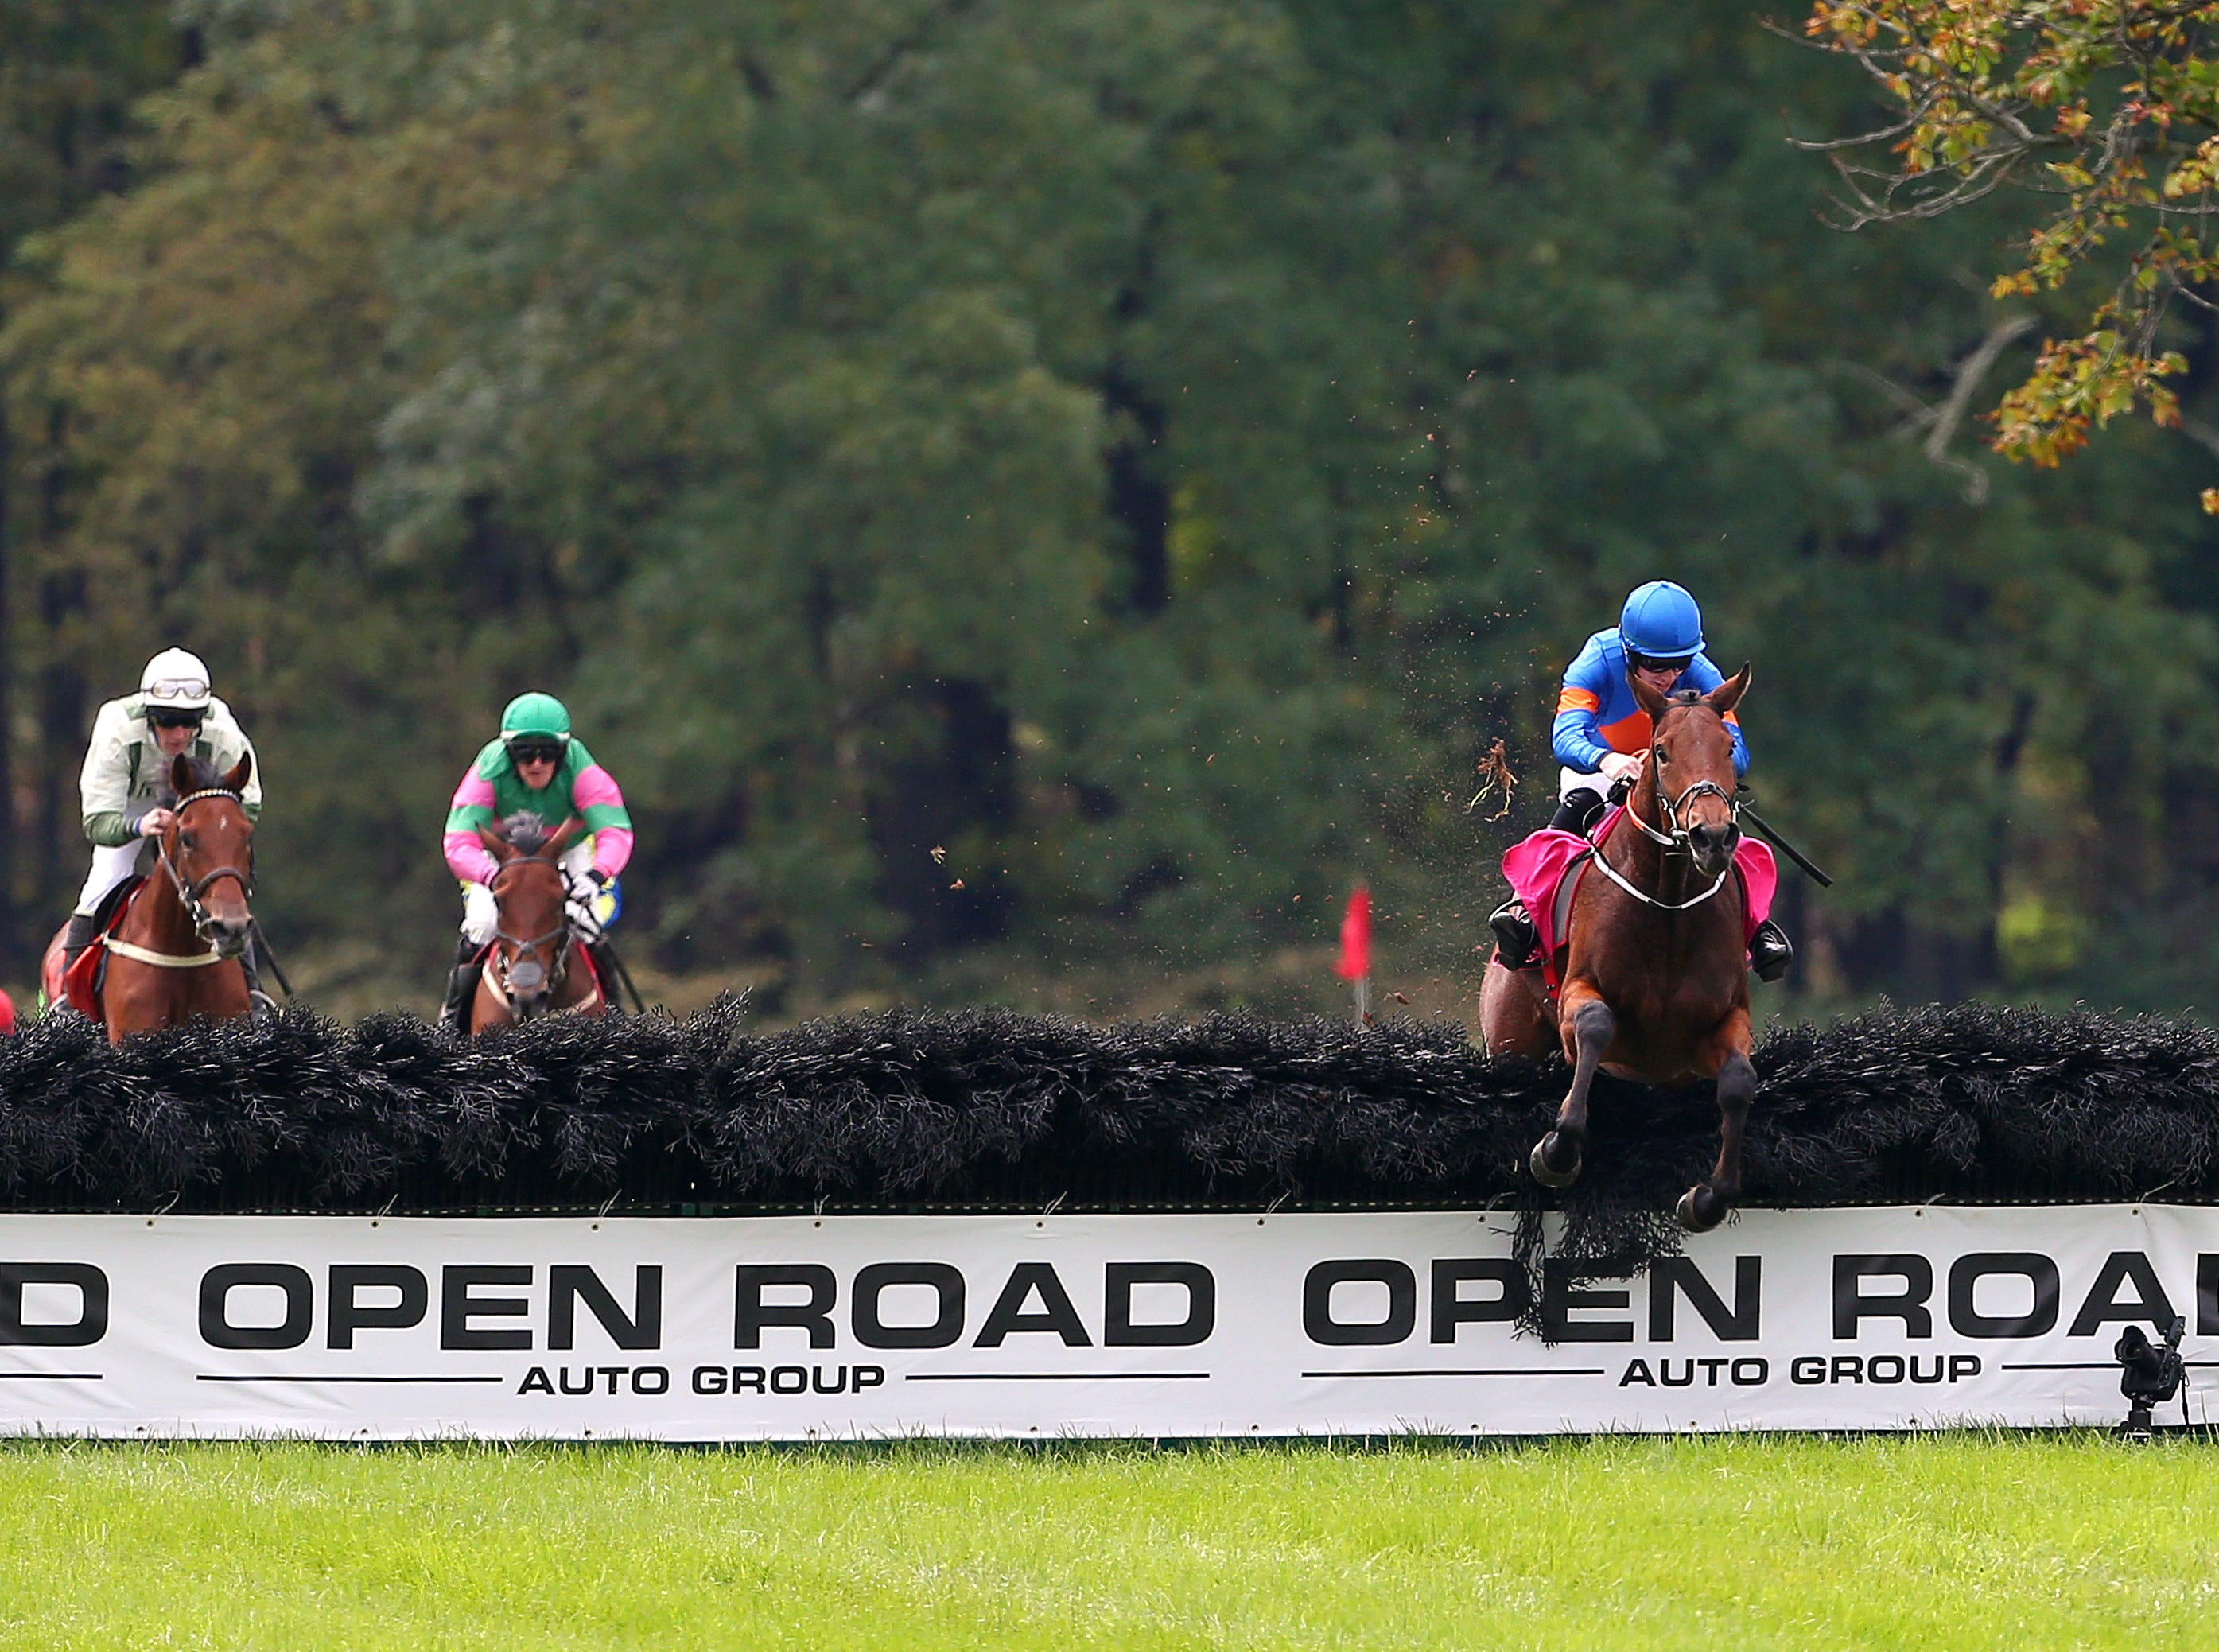 Caldbeck ridden by jockey Jack W. Kennedy clears the final jump on his way to victory in the Gladstone during the 98th running of the Far Hills Race Meeting at Moorland Farm in Far Hills, N.J. on Saturday, Oct. 20, 2015. Photo by Rich Schultz/ HNT